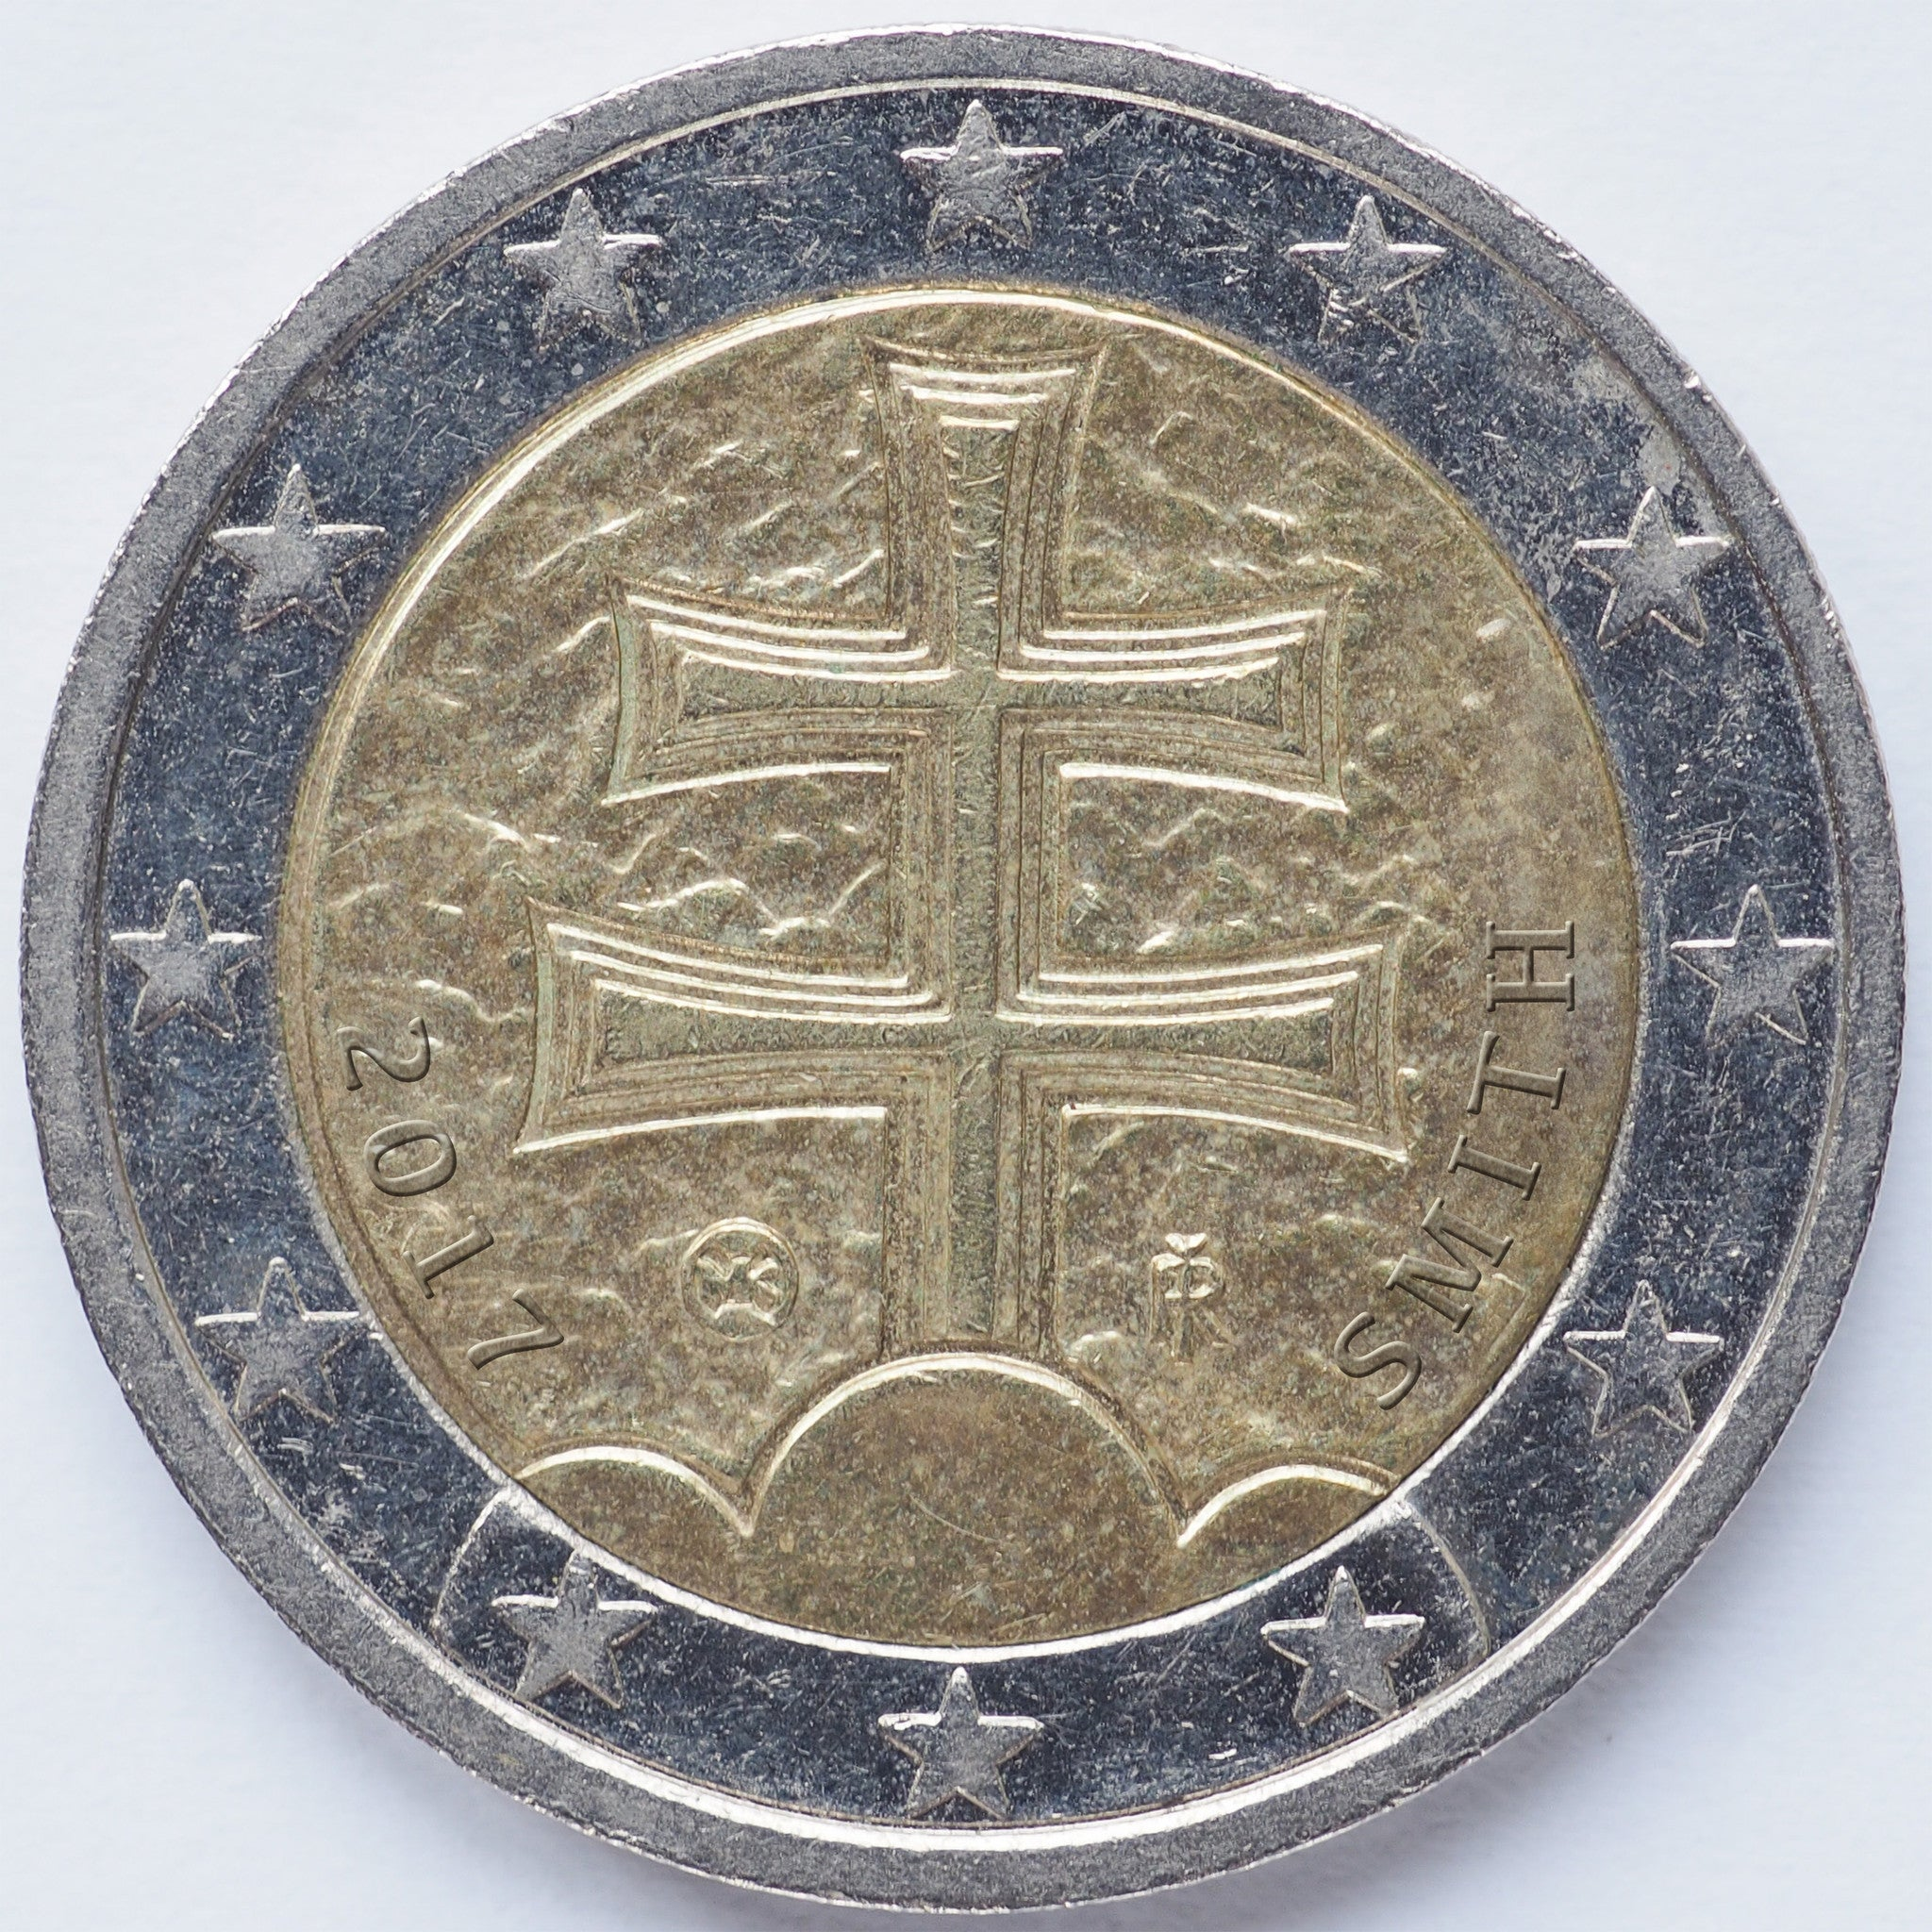 Euro coin without easel back